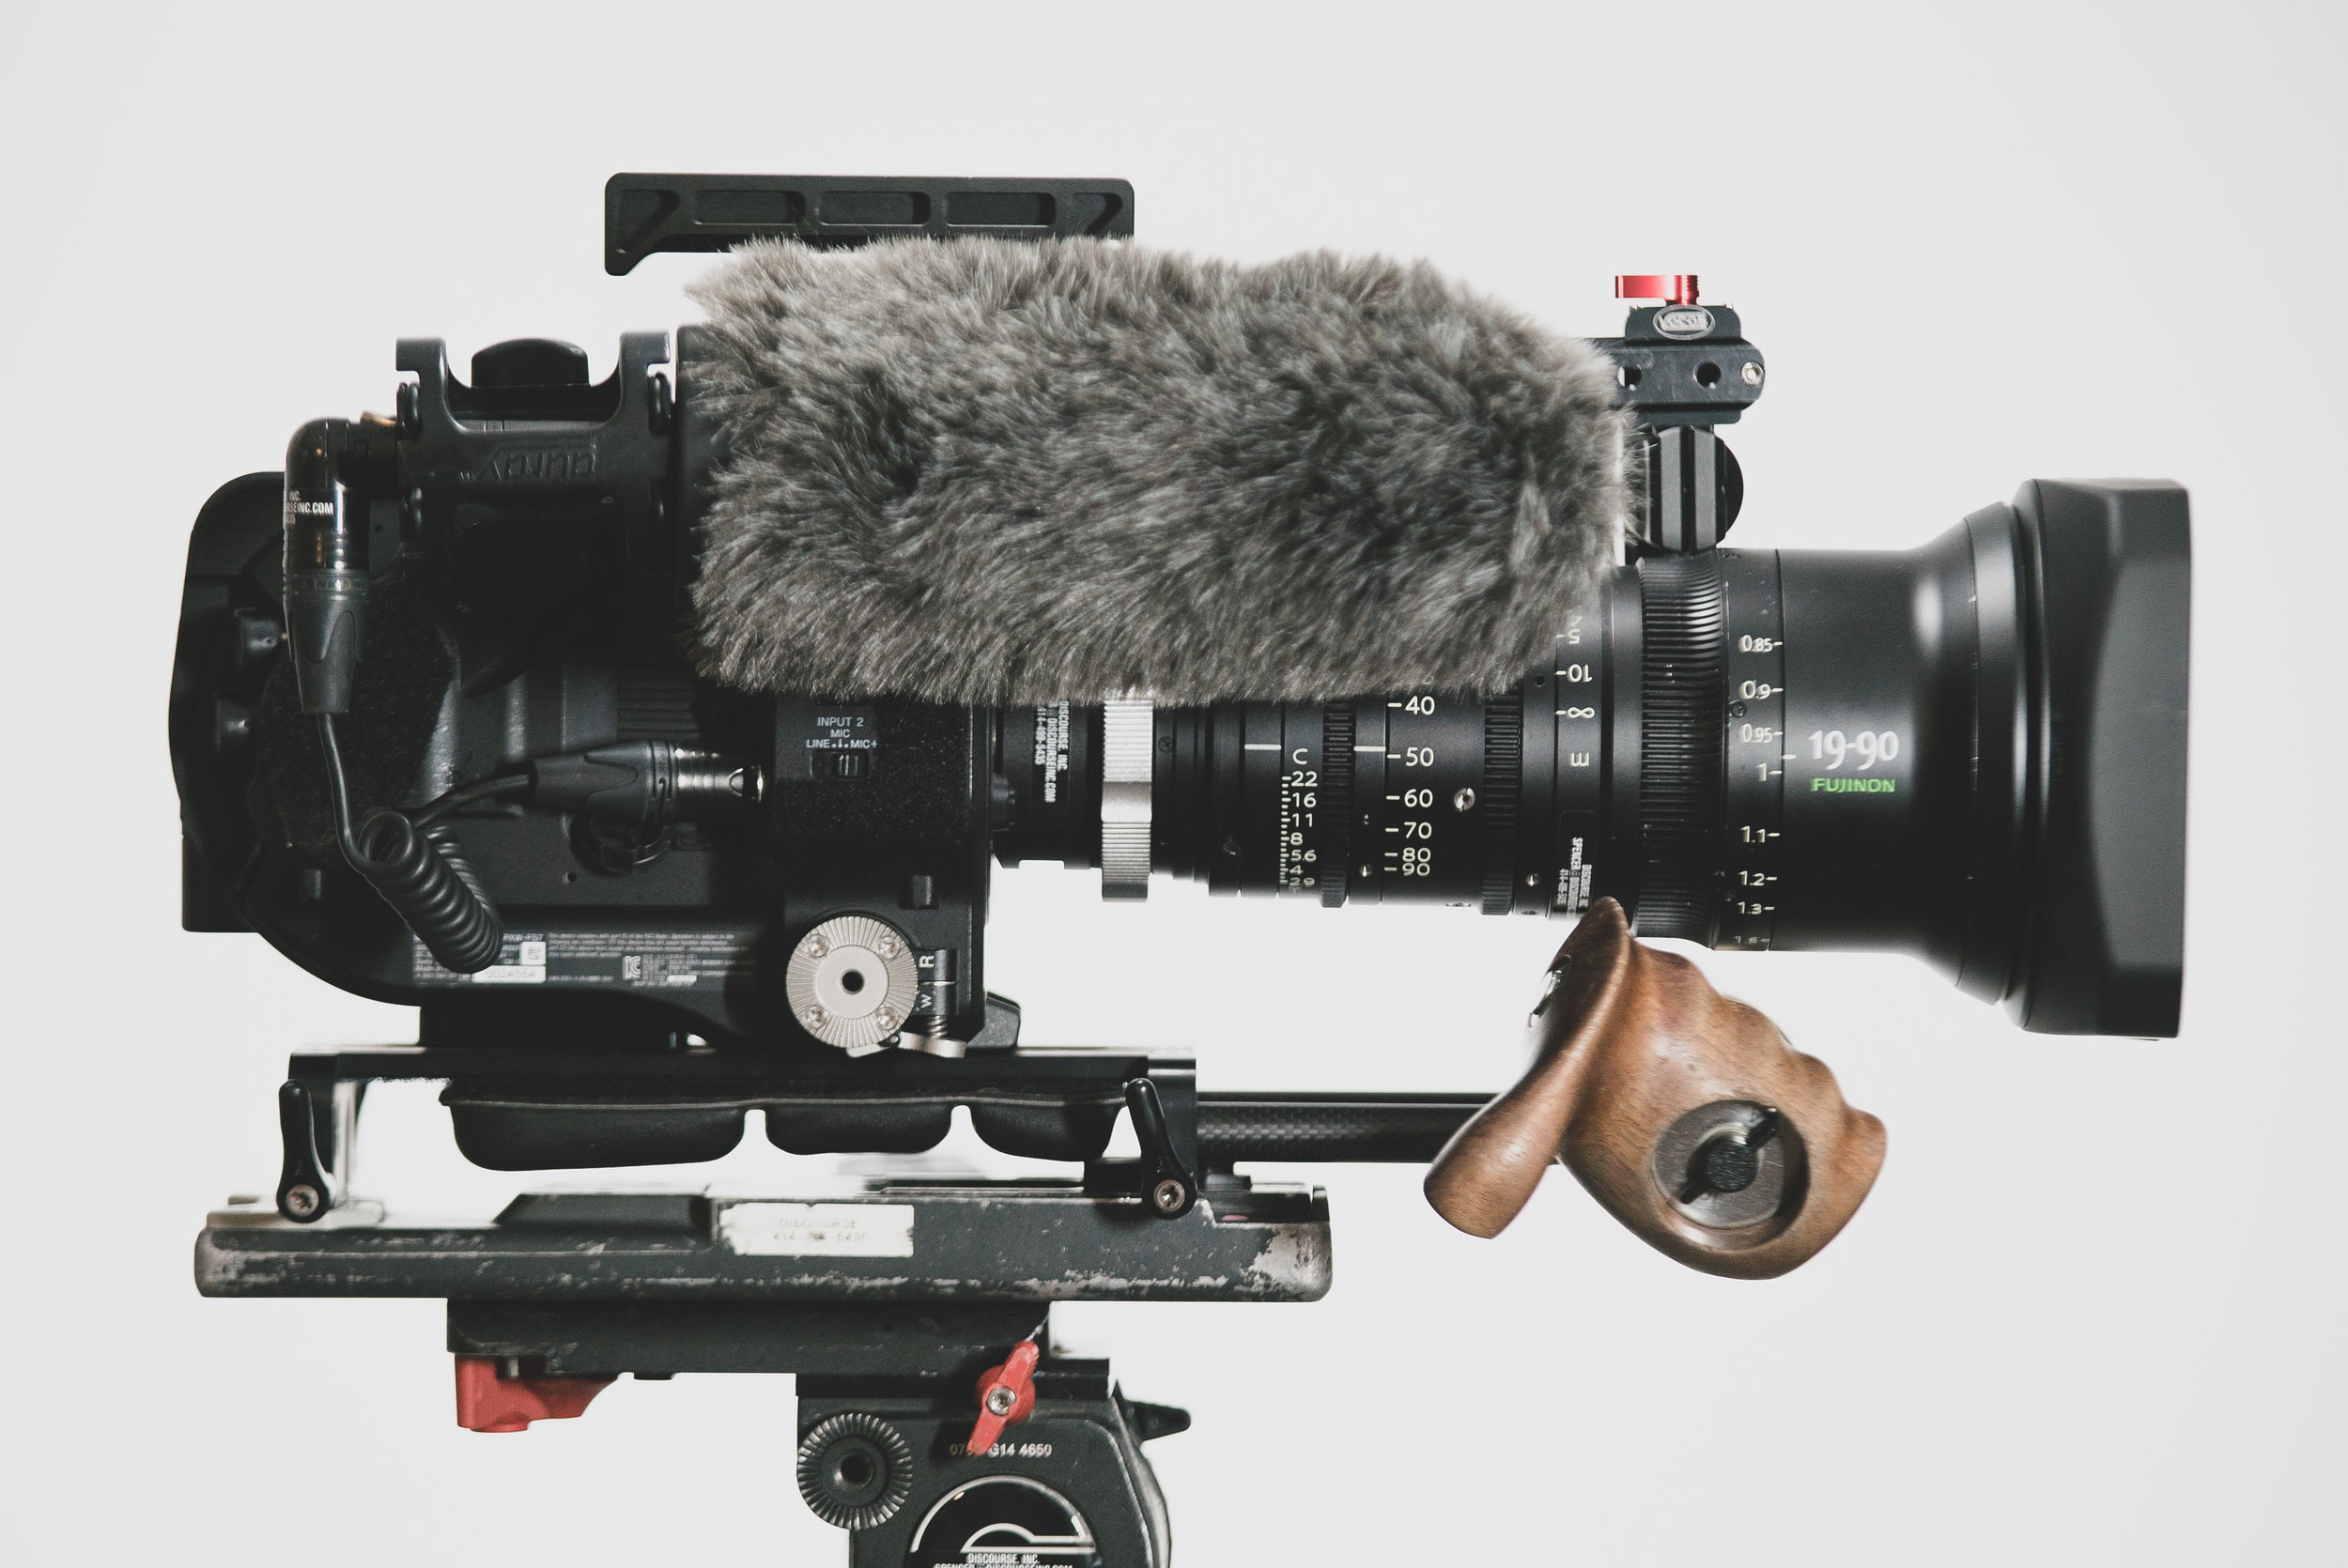 Stock Sony Smart Grip / Arm assembly included with rental.